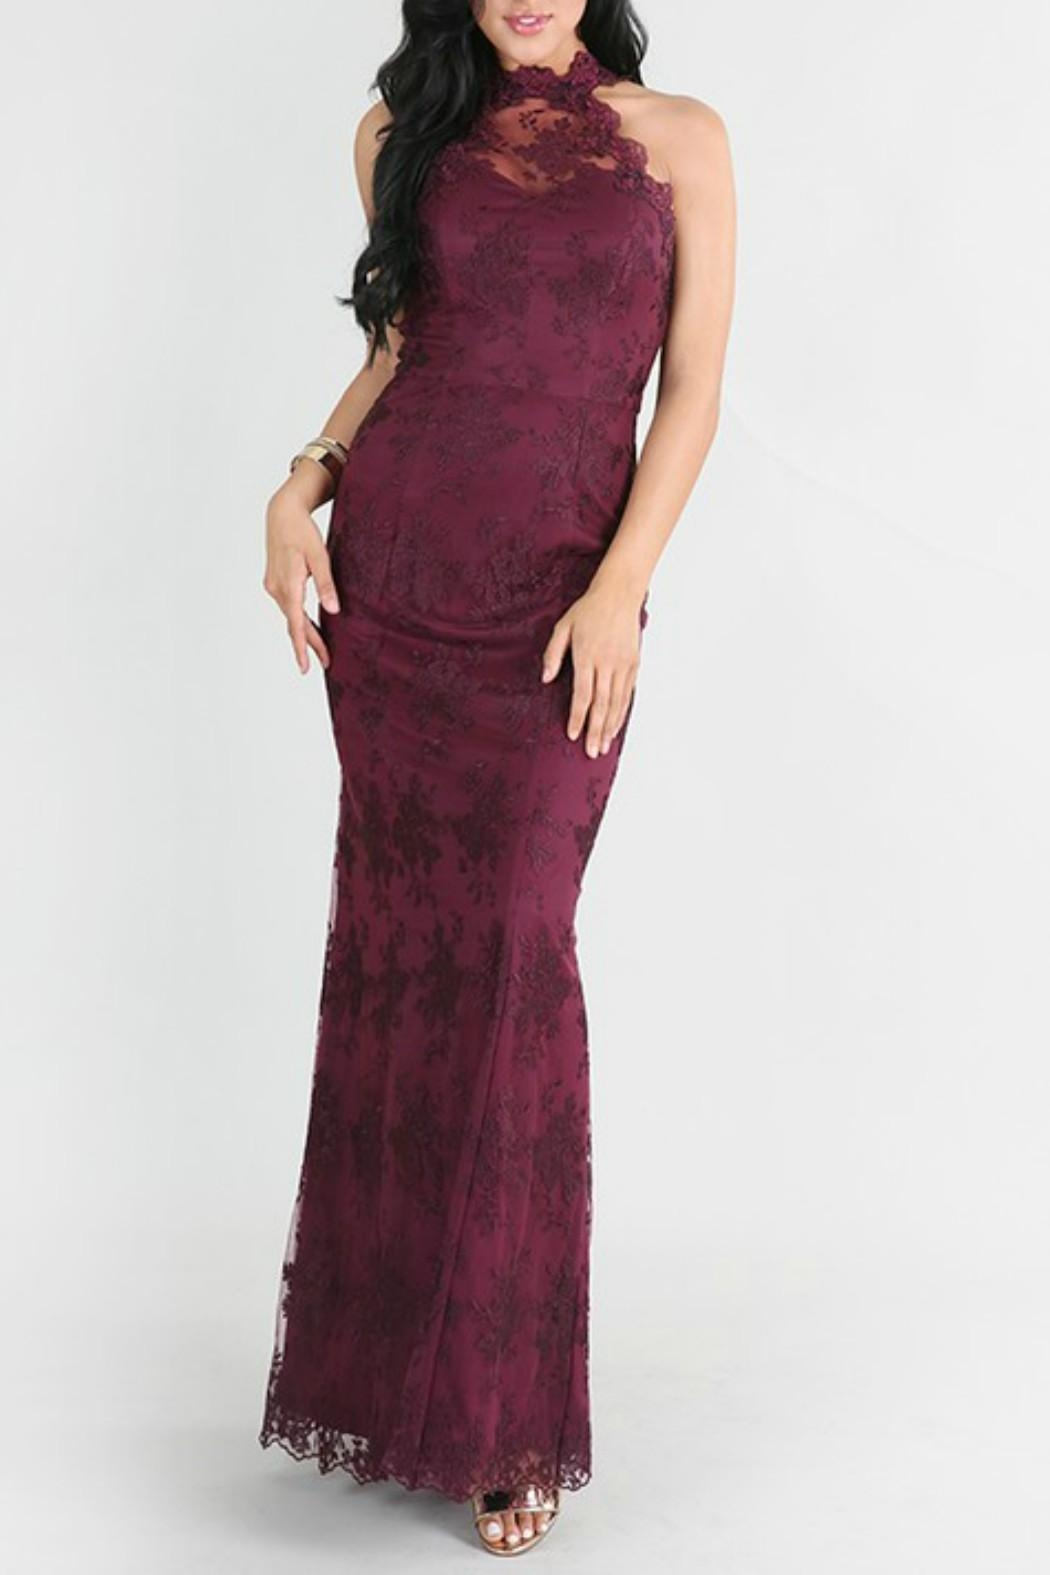 Nikibiki Plum Lace Gown from Wilmington by The Dress Shop Wilmington ...